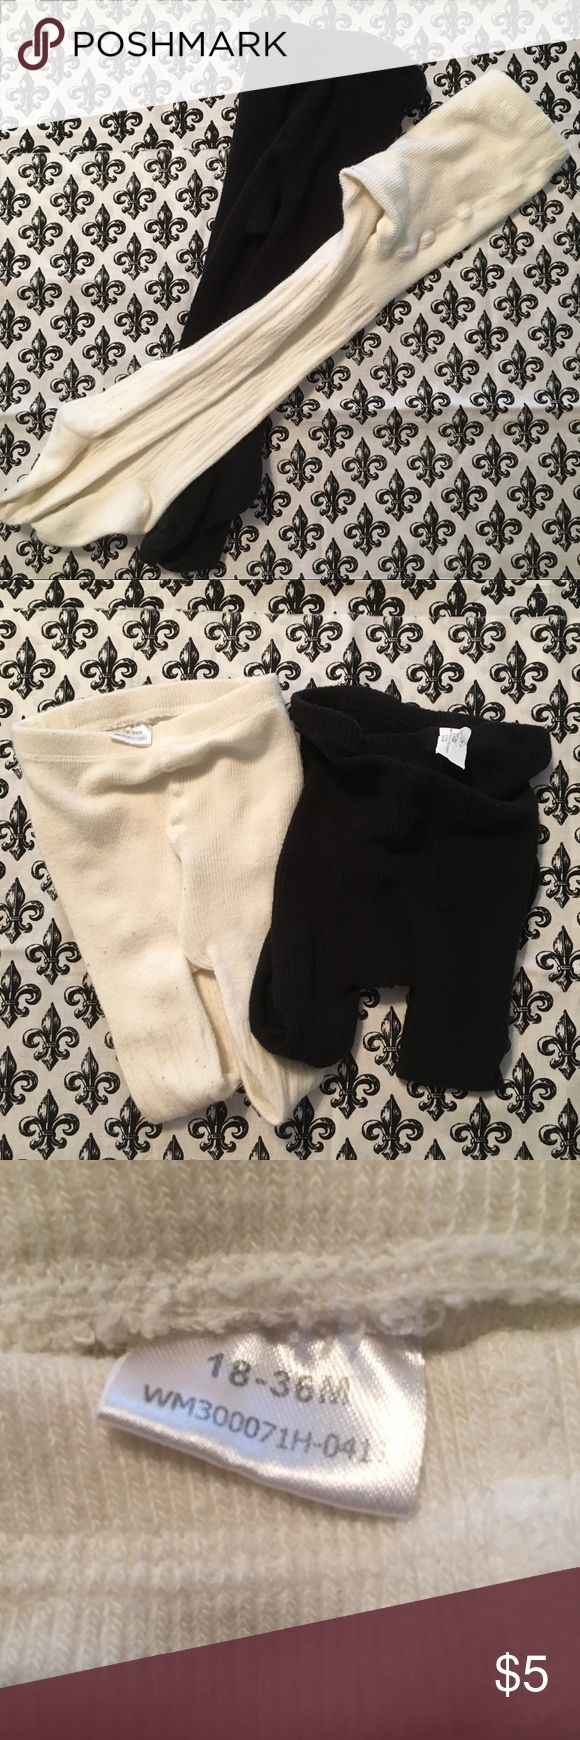 🎃 Lot of 2 Thick Tights in Black/Off White Features: Two pair of thick tights one black one off white. Always great to keep around and these are a steal with October's 5🎃/$10 Sale going on!  Condition: Good, Used Fit: 18-36 Months per tags but with experience I personally would only size these between 18-24 Months.   YOUR BUSINESS IS MY BUSINESS: I only want to sell you the best quality used or like-new items for your buck--full disclosure policy on FLAWED items. Accessories Socks & Tights